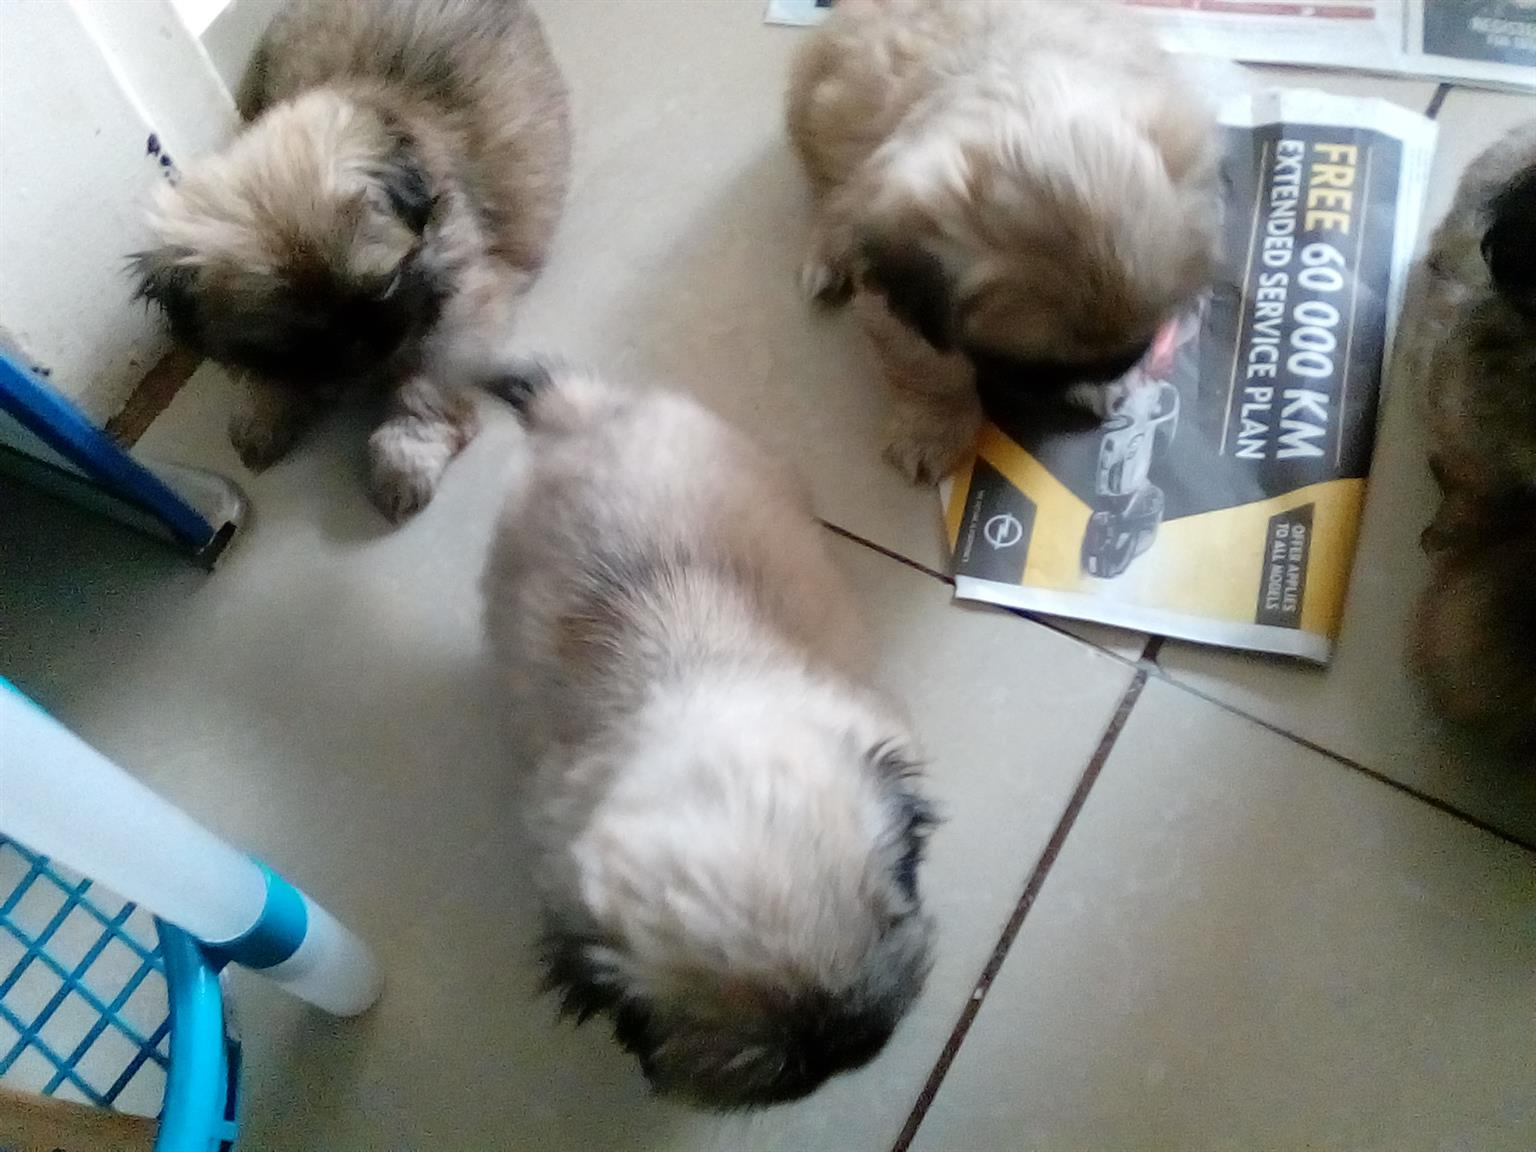 Pekinese puppies